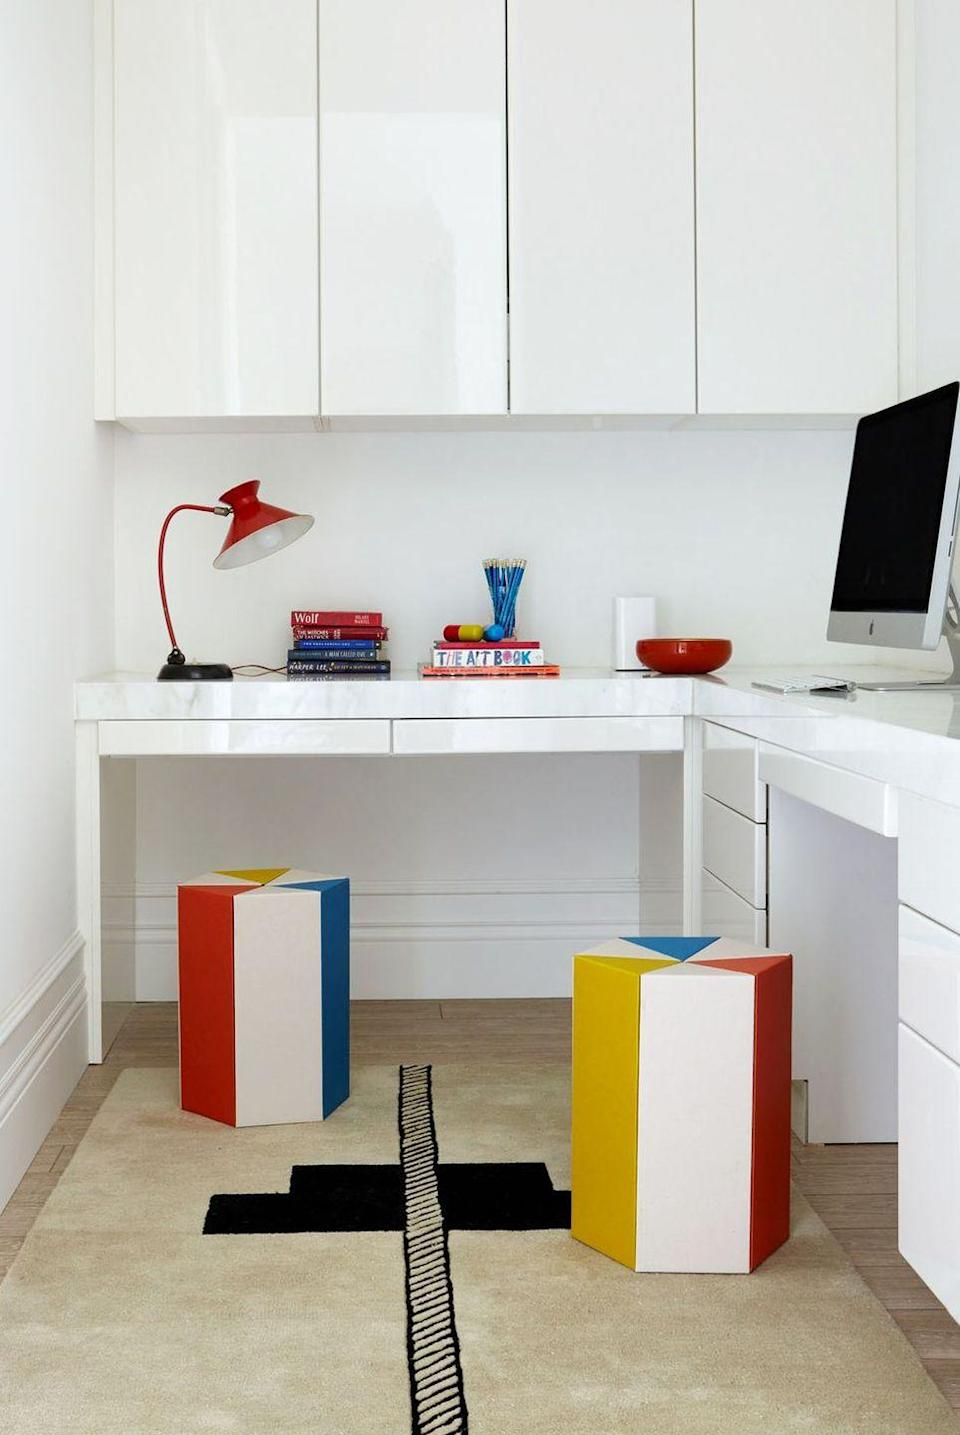 """<p>Opt for glossy white lacquered cabinets and furniture for a small makeshift home office in the corner of a larger room or if you're converting a walk-in closet and need to maximize light. The high sheen gives a mirror effect, reflecting light to make it feel like a larger, more open space. Designer <a href=""""http://www.rajirm.com/"""" rel=""""nofollow noopener"""" target=""""_blank"""" data-ylk=""""slk:Raji Radhakrishnan"""" class=""""link rapid-noclick-resp"""">Raji Radhakrishnan</a> gave <a href=""""https://www.housebeautiful.com/design-inspiration/house-tours/a30696950/raji-rm-piet-boon-virginia/"""" rel=""""nofollow noopener"""" target=""""_blank"""" data-ylk=""""slk:this"""" class=""""link rapid-noclick-resp"""">this</a> home office some pops of fun and vibrancy with primary-colored stools and a graphic rug.</p>"""